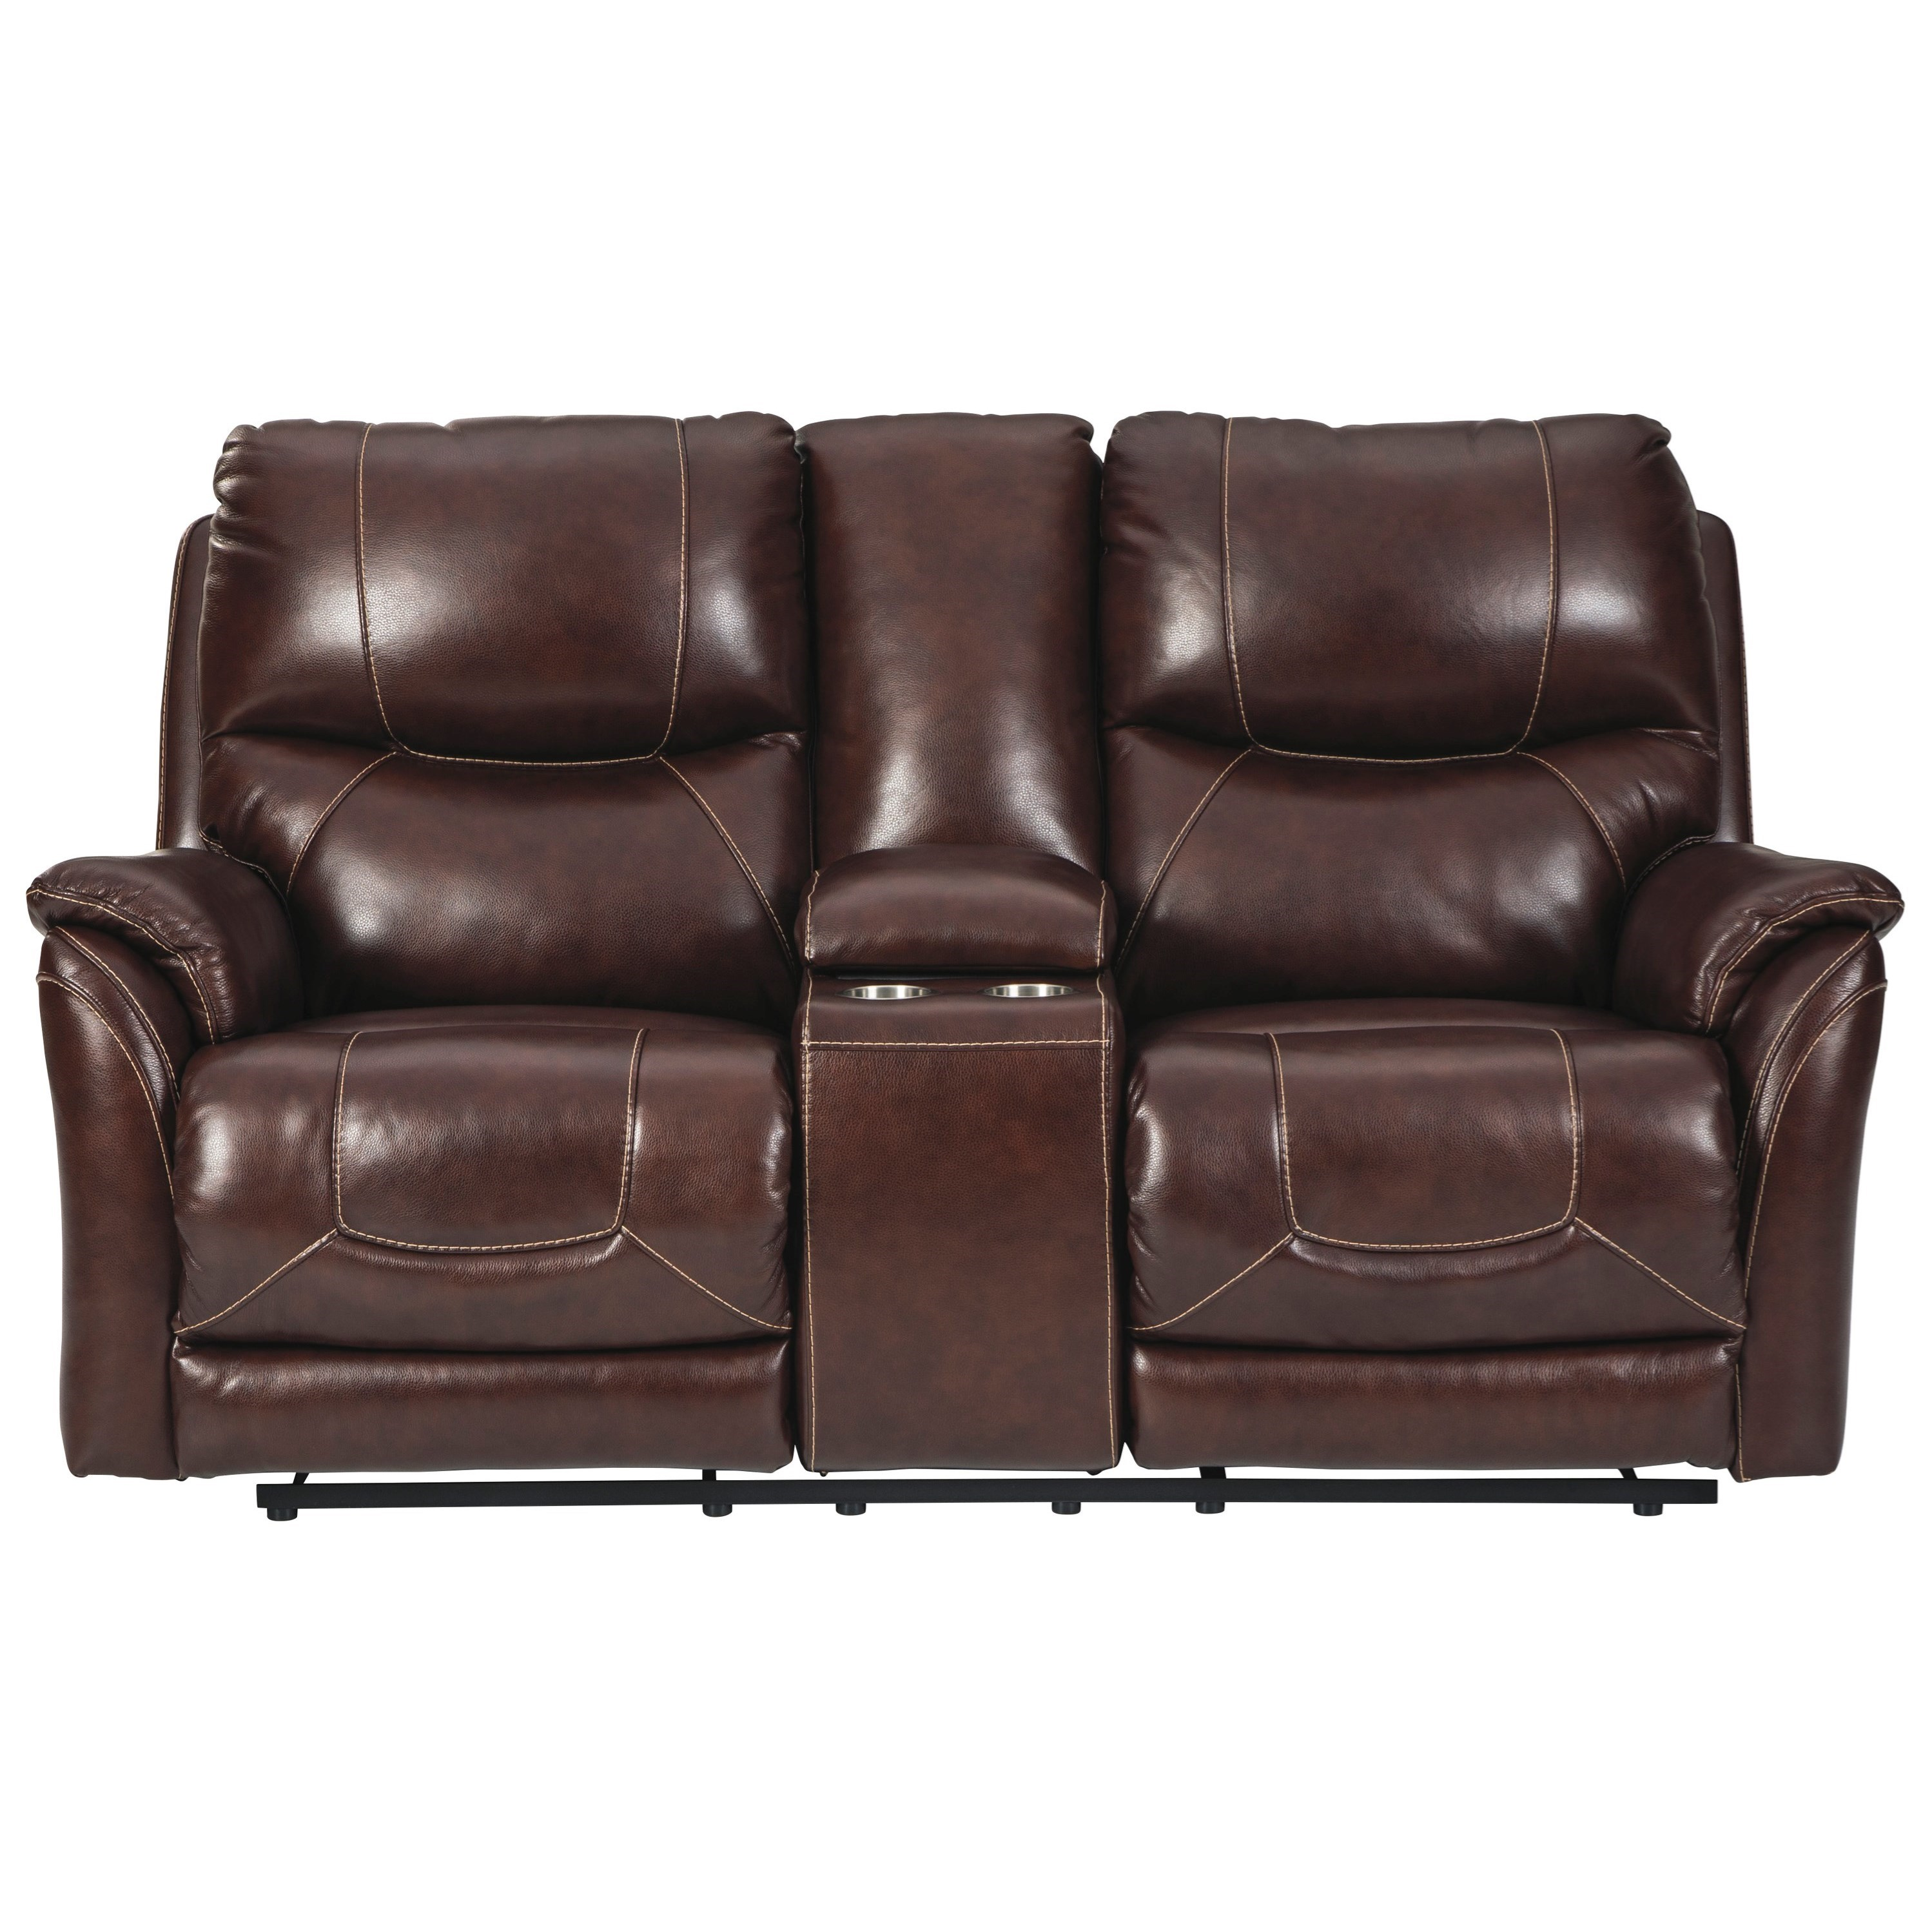 Dellington Power Reclining Loveseat with Console by Ashley (Signature Design) at Johnny Janosik